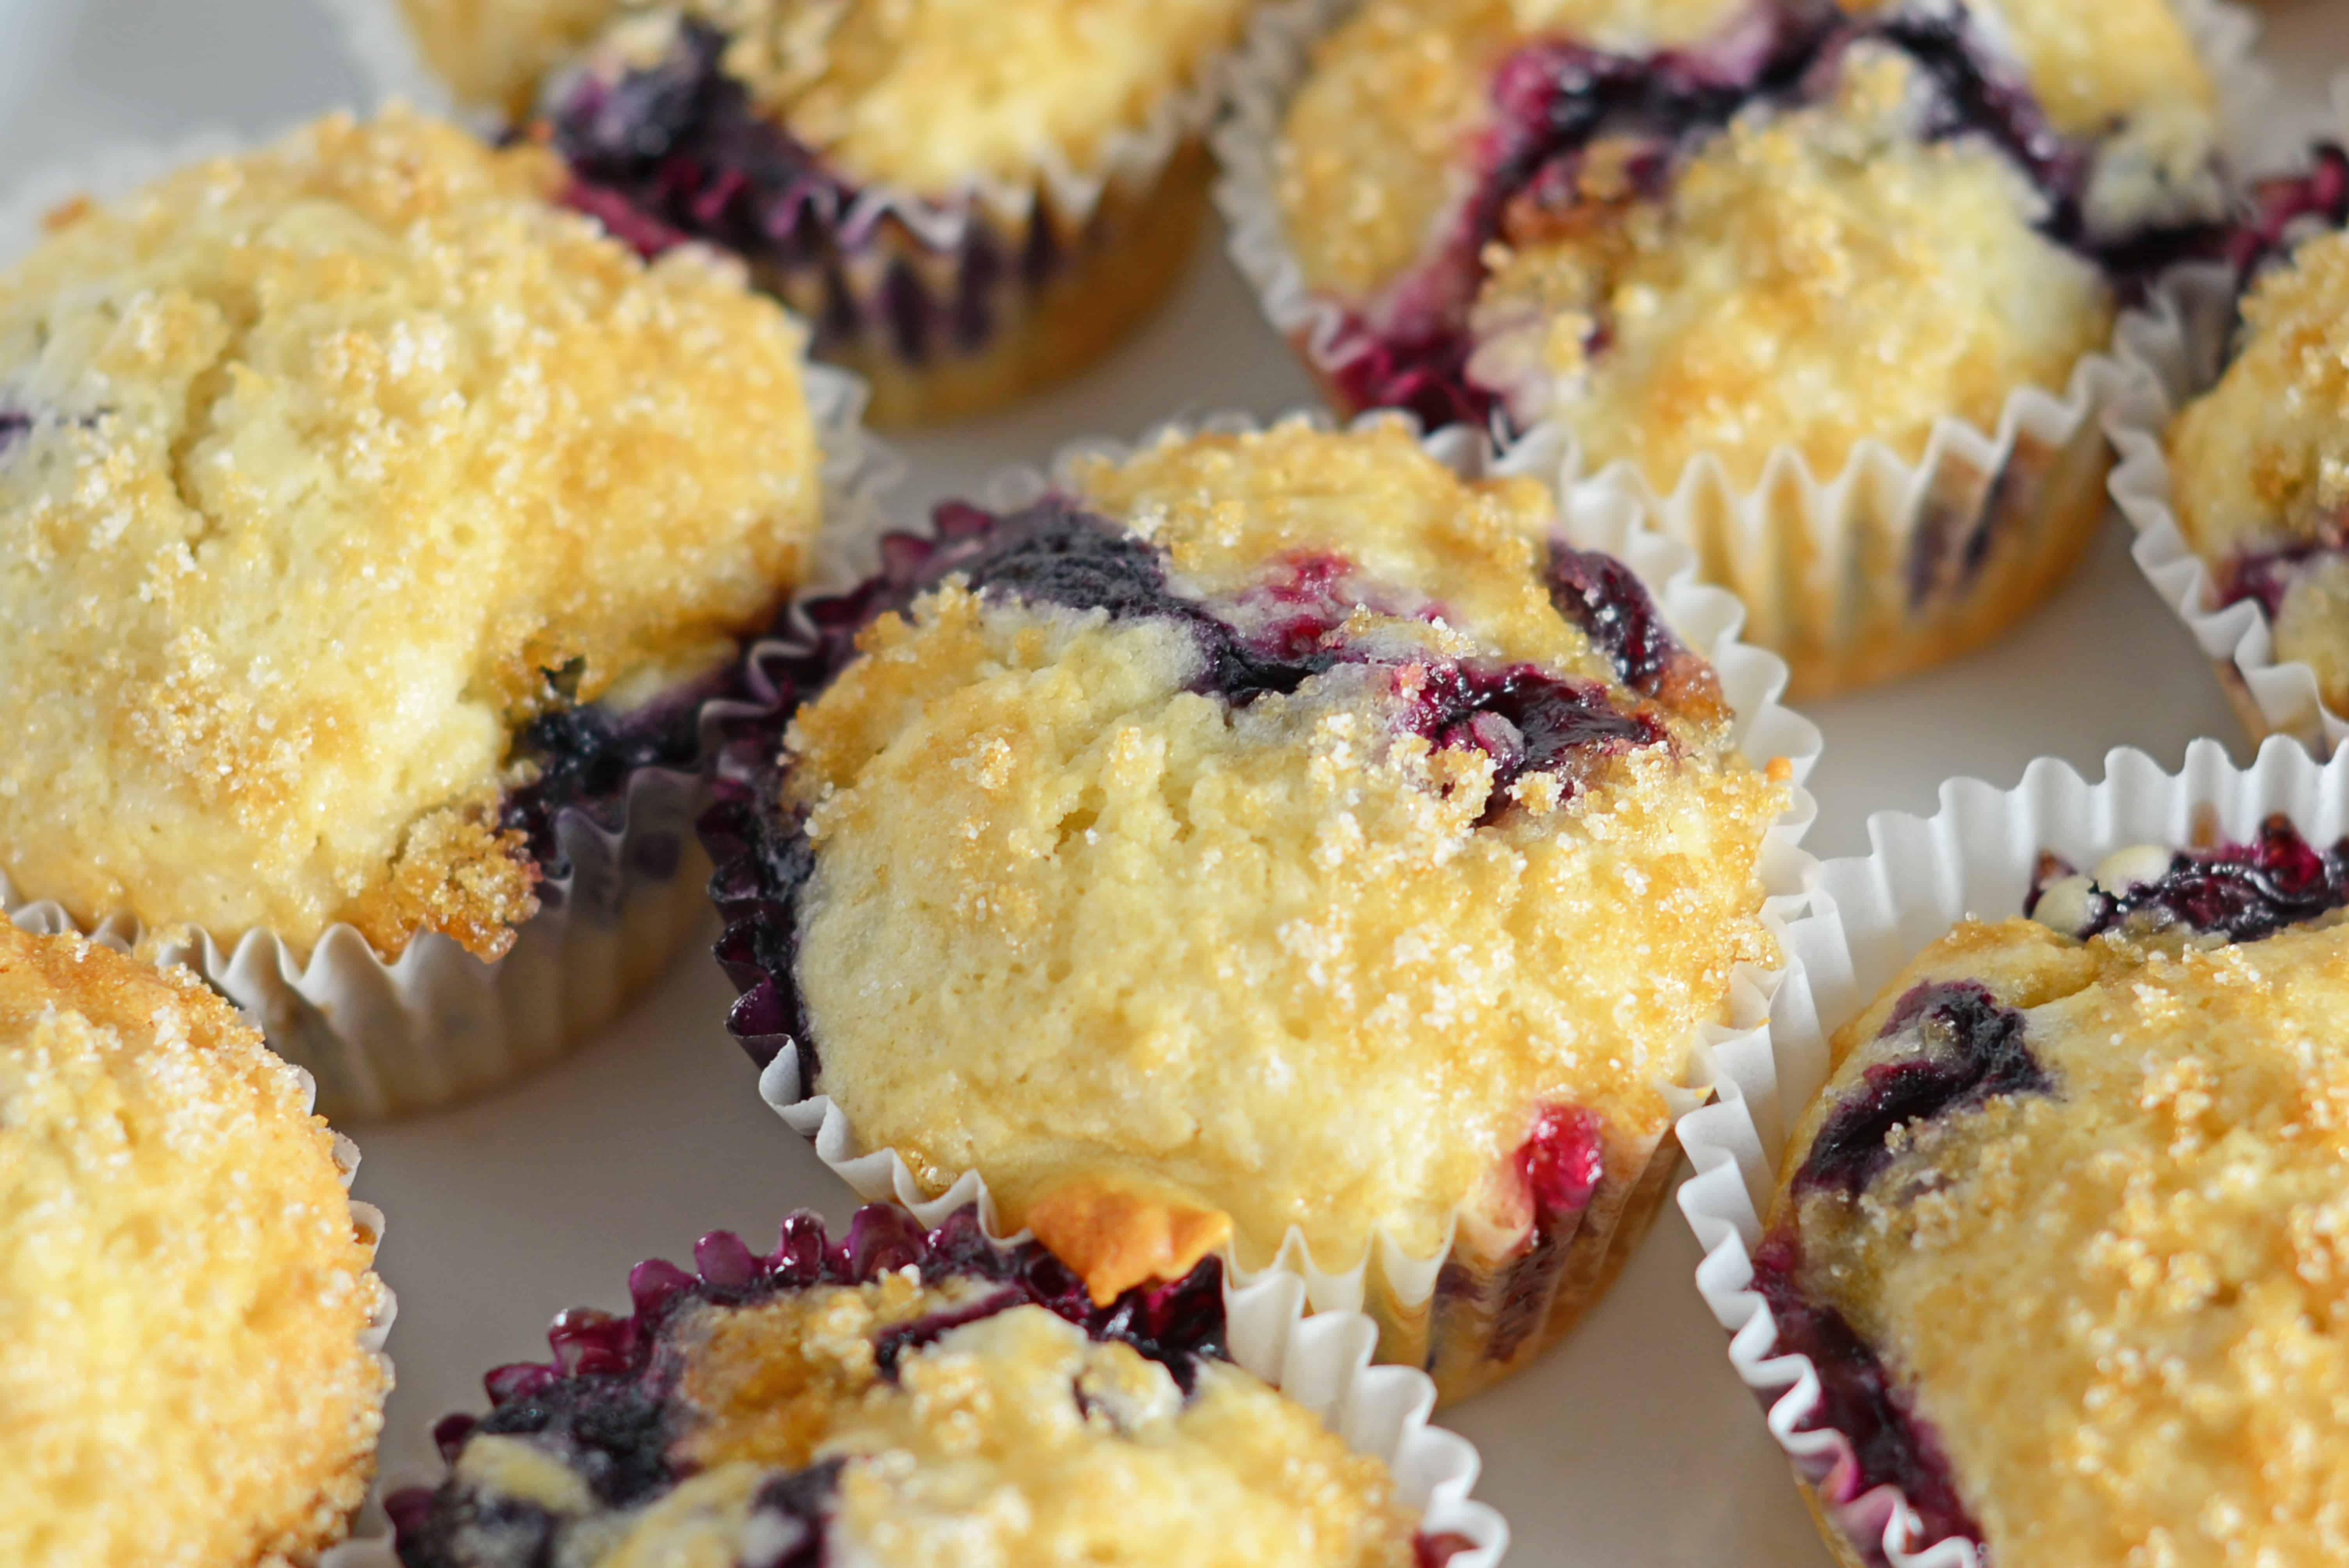 Classic Blueberry Muffins with a Streusel Crumble Topping - super easy recipe for super soft muffins. Perfect for any breakfast or brunch. www.savoryexperiments.com